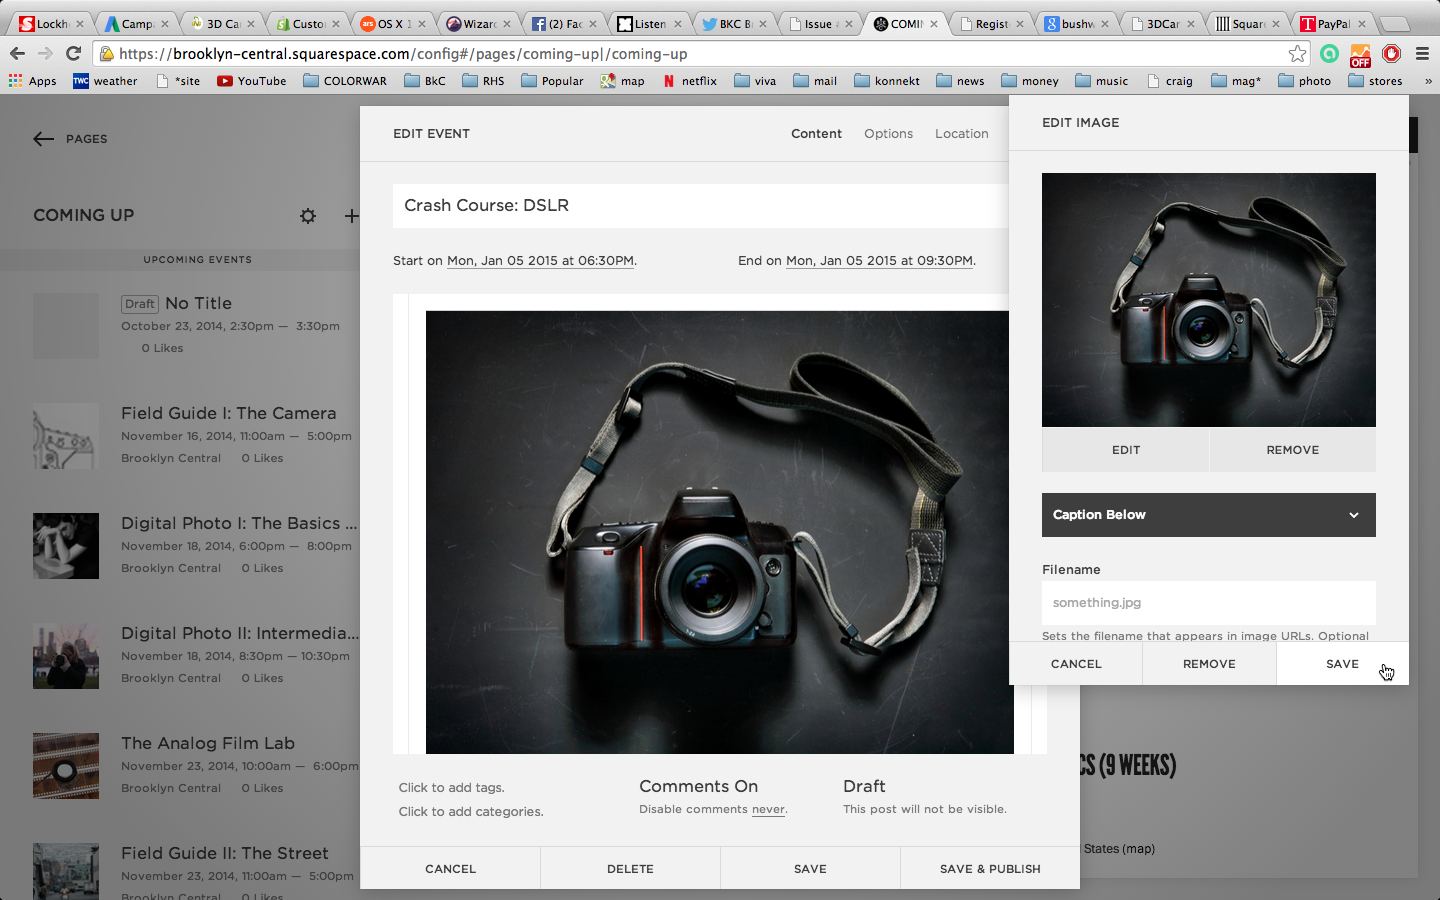 Select OPEN and then press SAVE on the image dialog box lower right hand corner